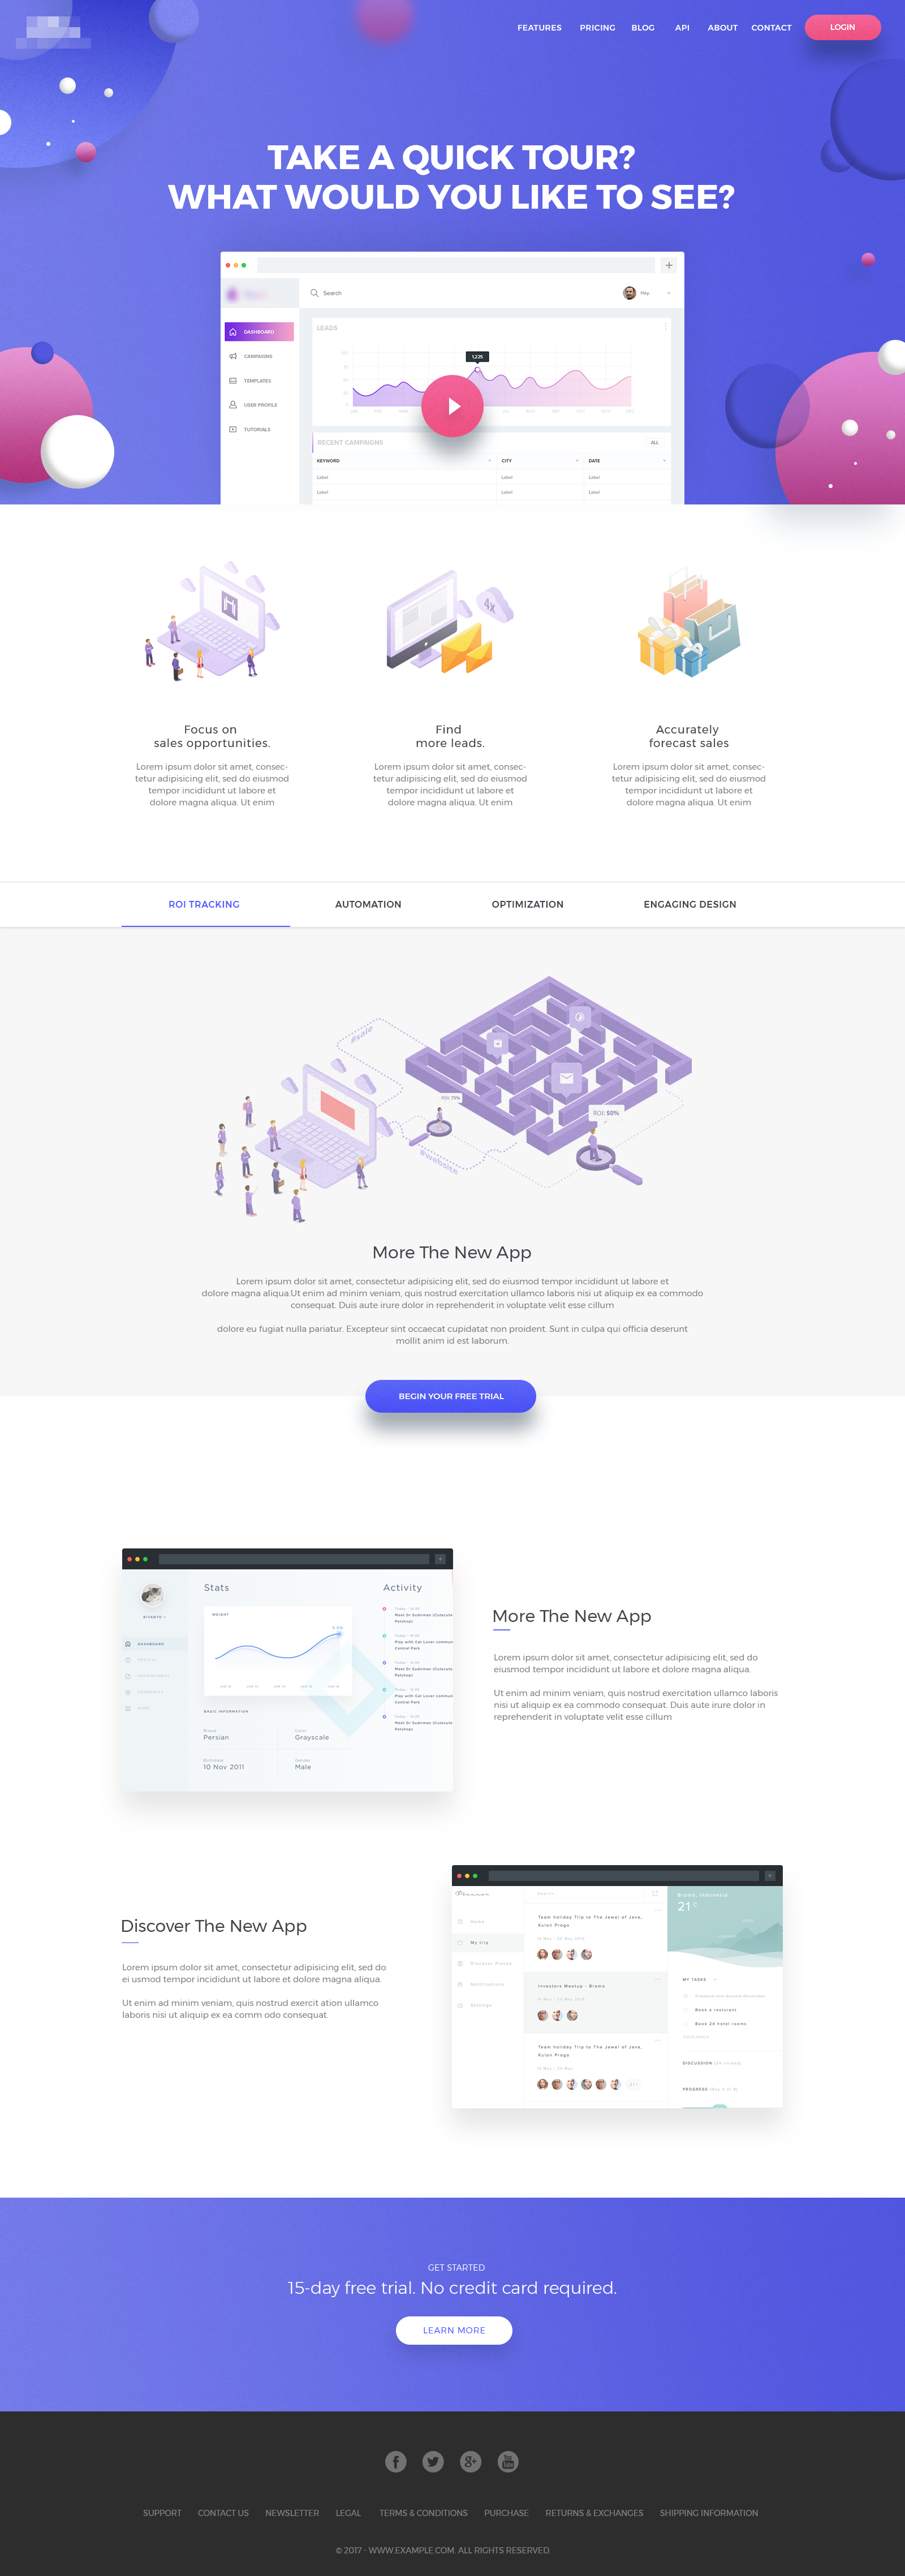 Dribbble – marketing_landing_page.png by Rono